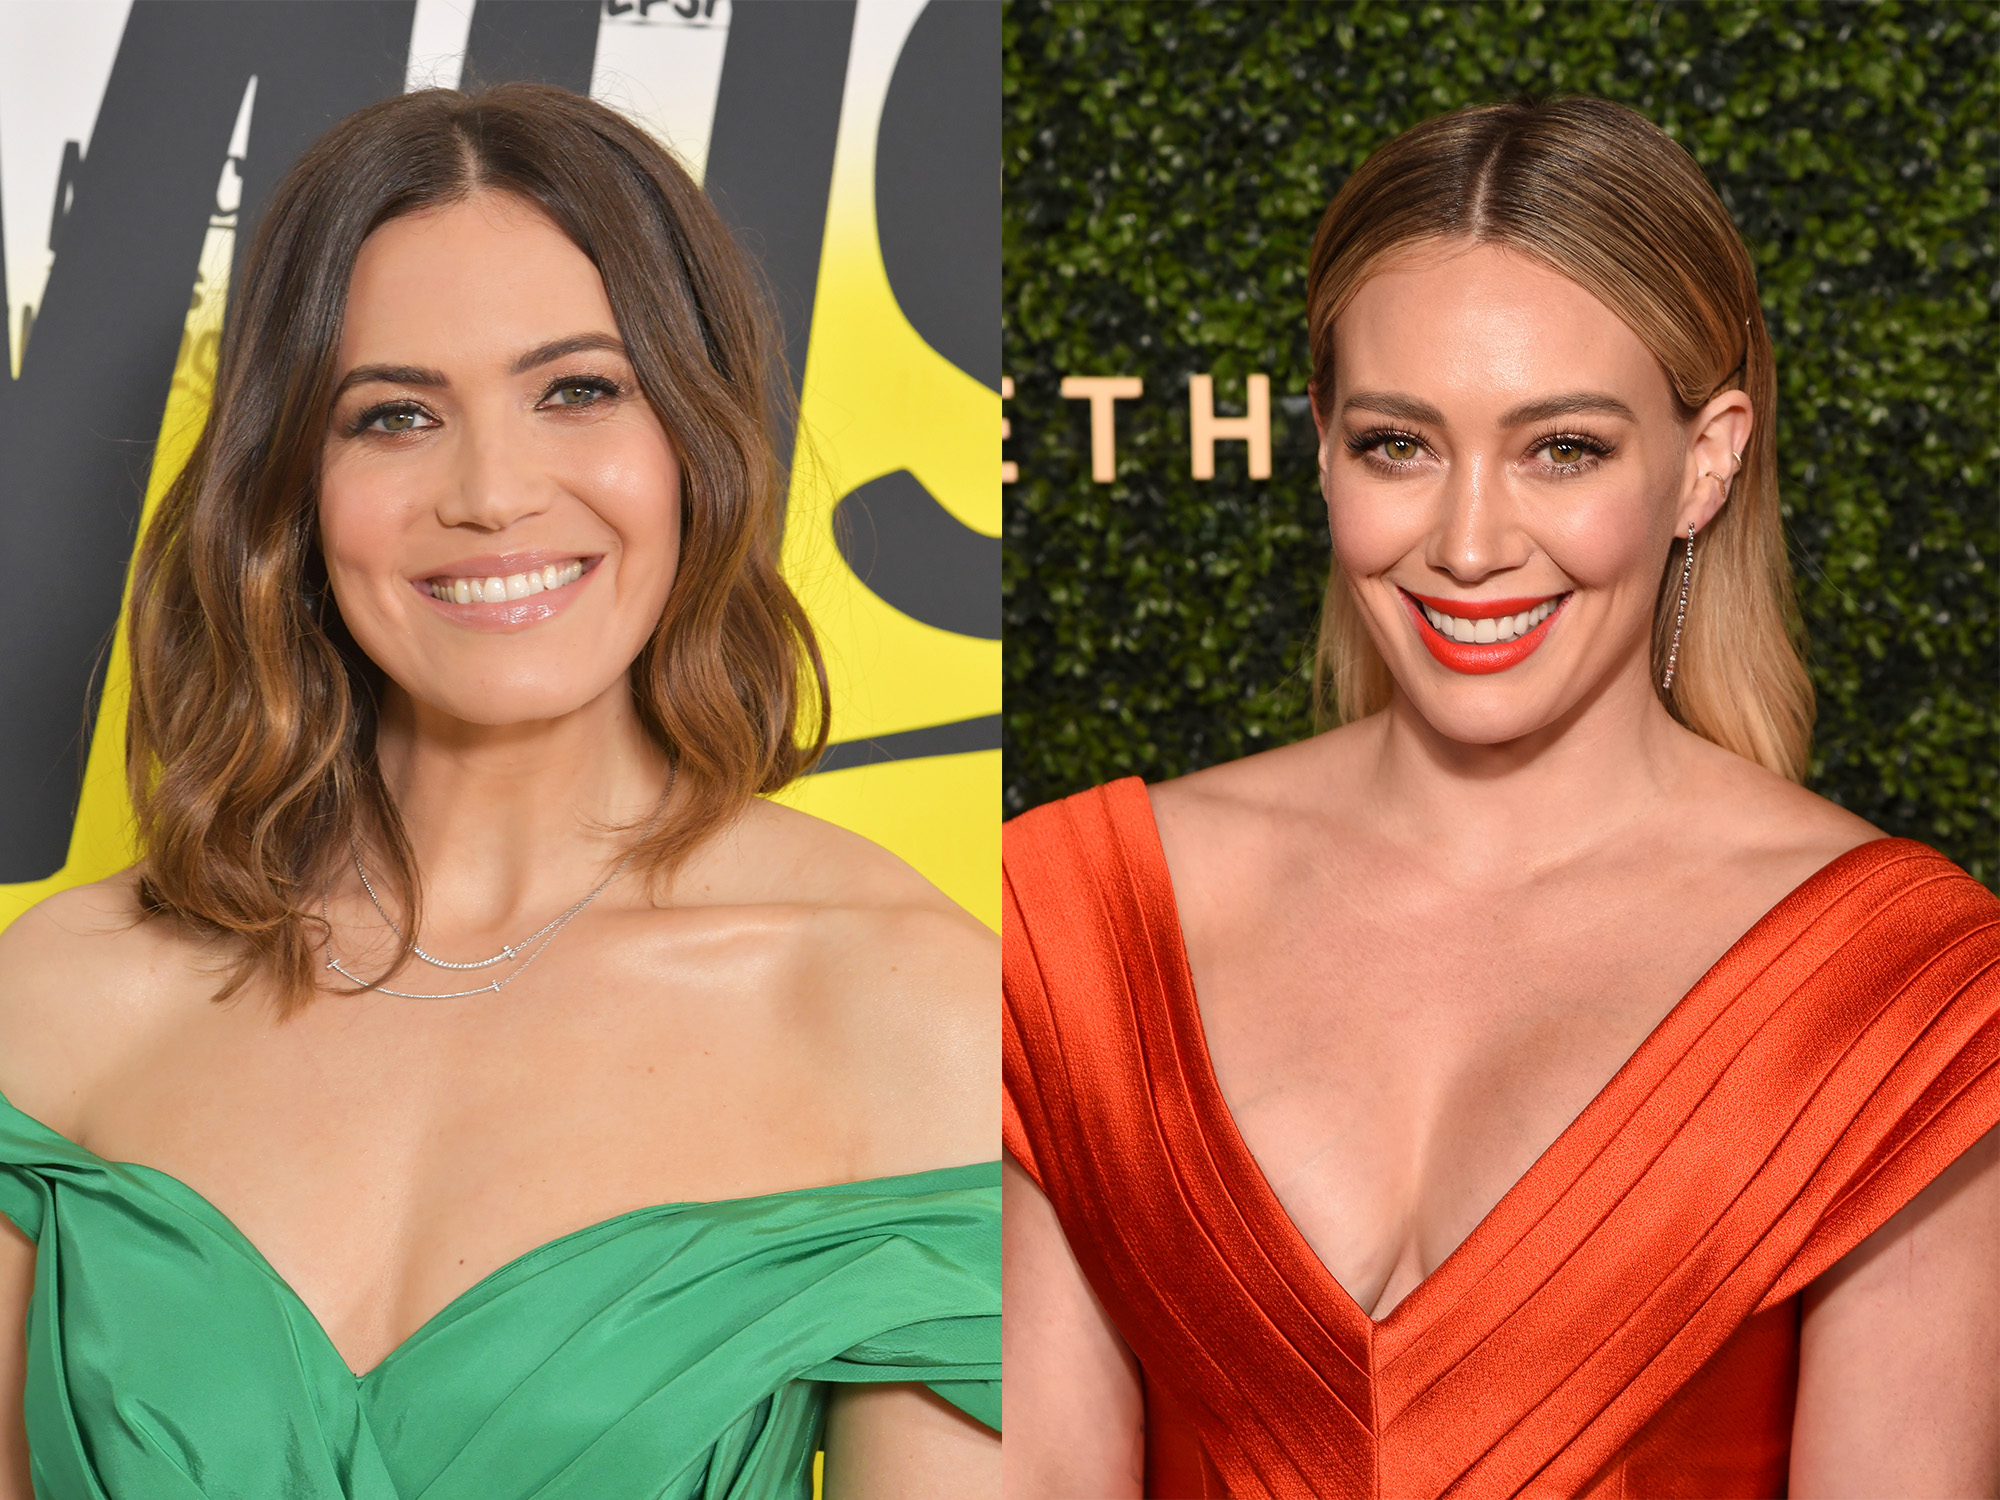 Mandy Moore and Hilary Duff